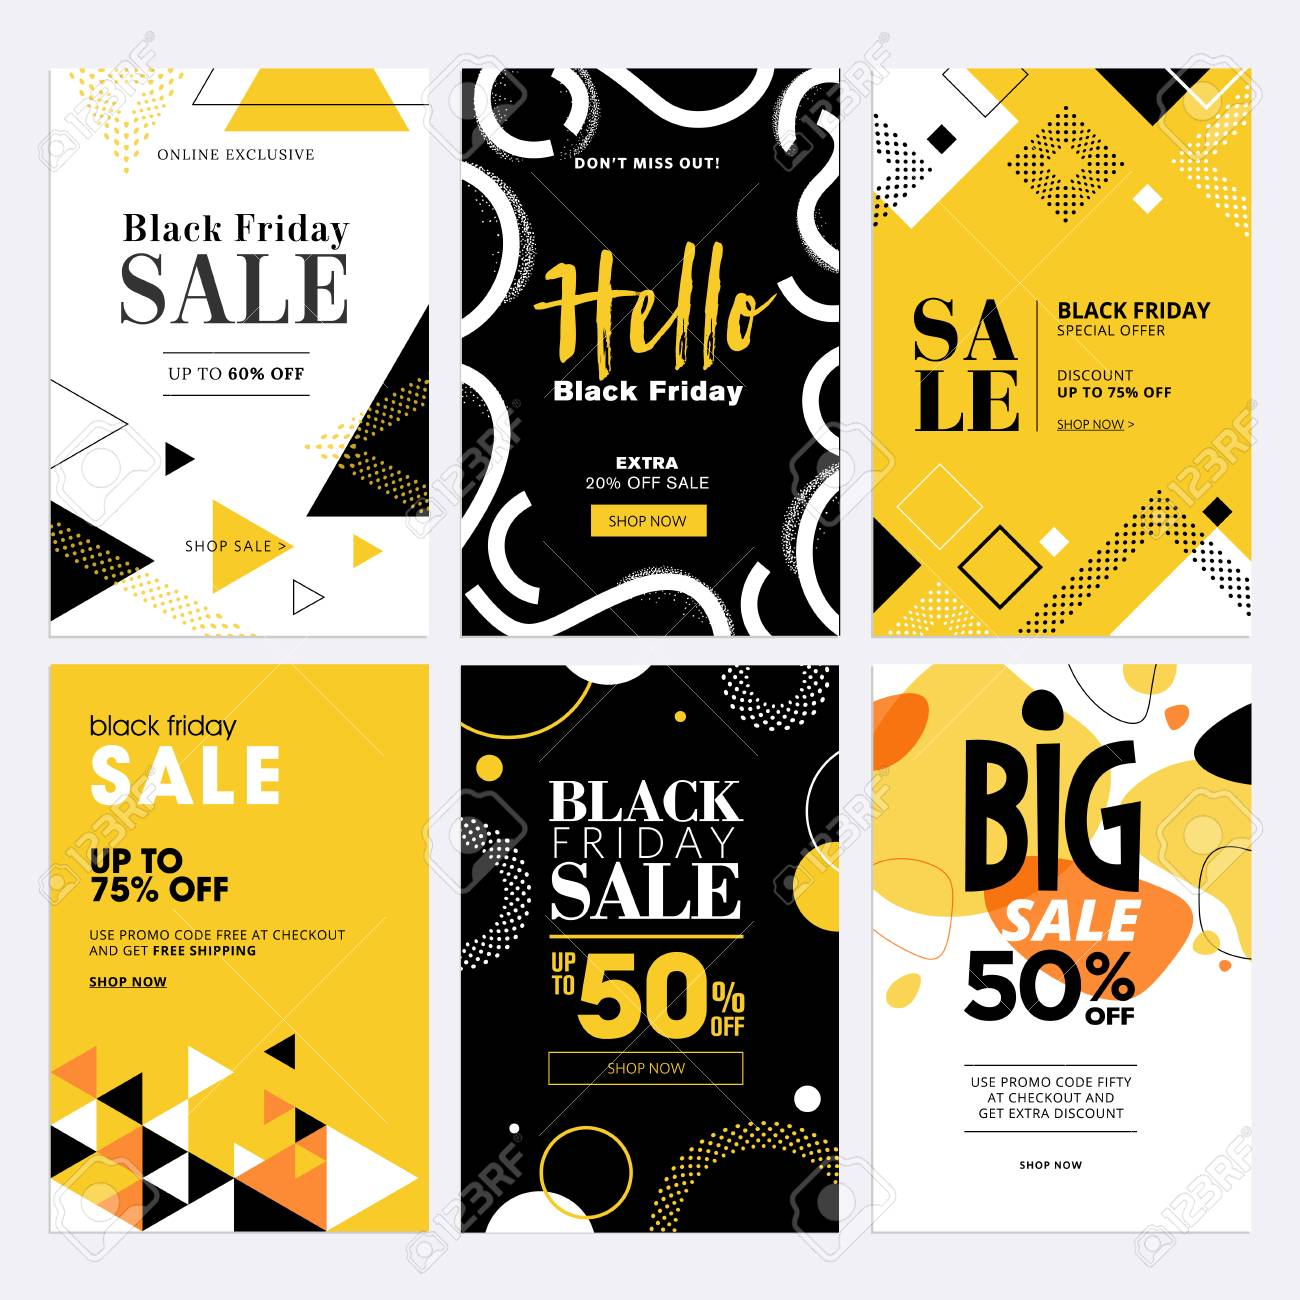 Black Friday sale banners. - 88427710